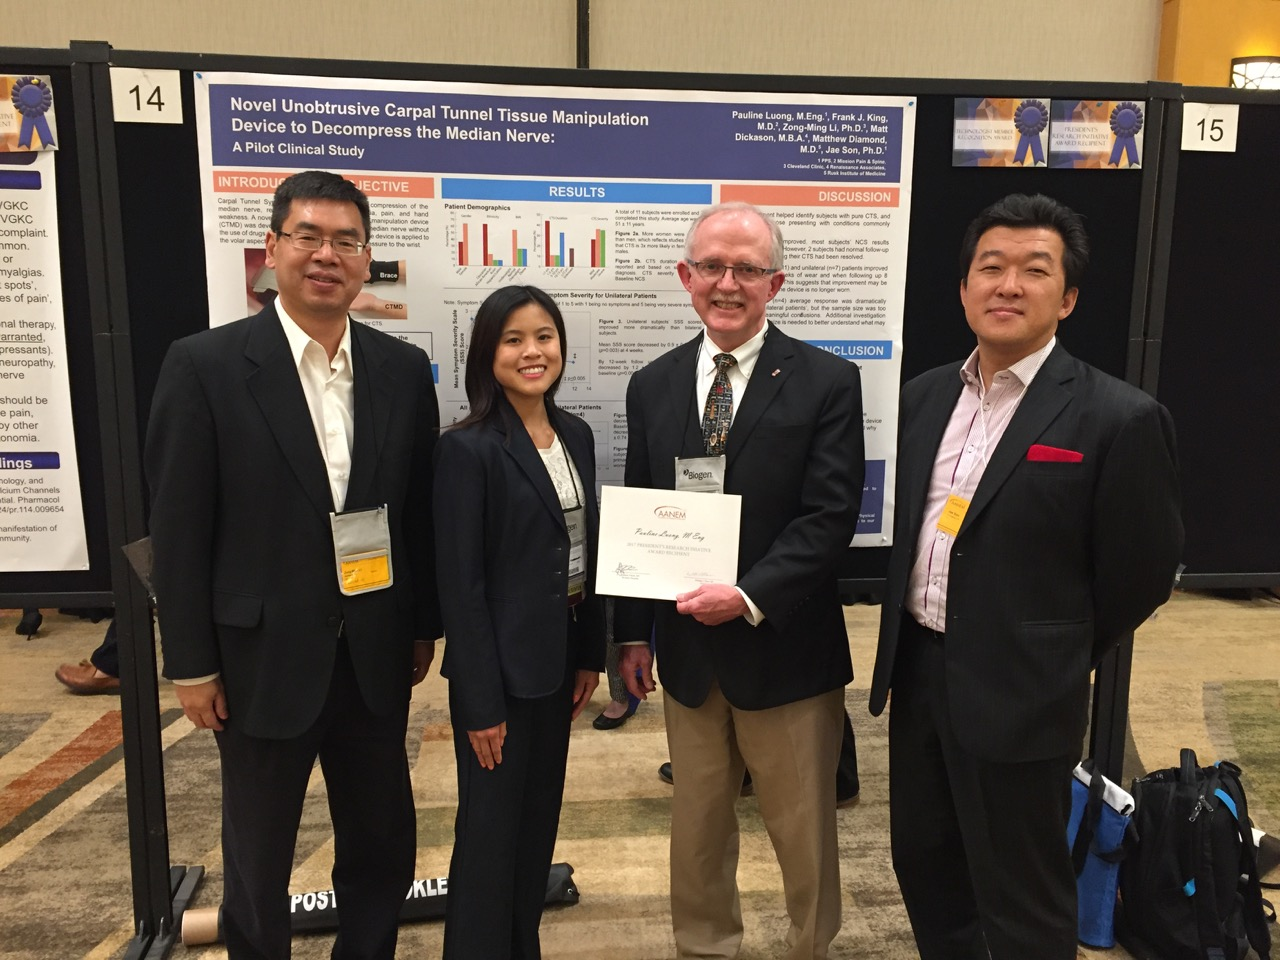 Award Presentation by AANEM President (Photo from L to R: Zong-Ming Li, PhD of Cleveland Clinic, Pauline Luong, ME Lead Author, William S. Pease, MD President of AANEM, and Jae Son, PhD Inventor)